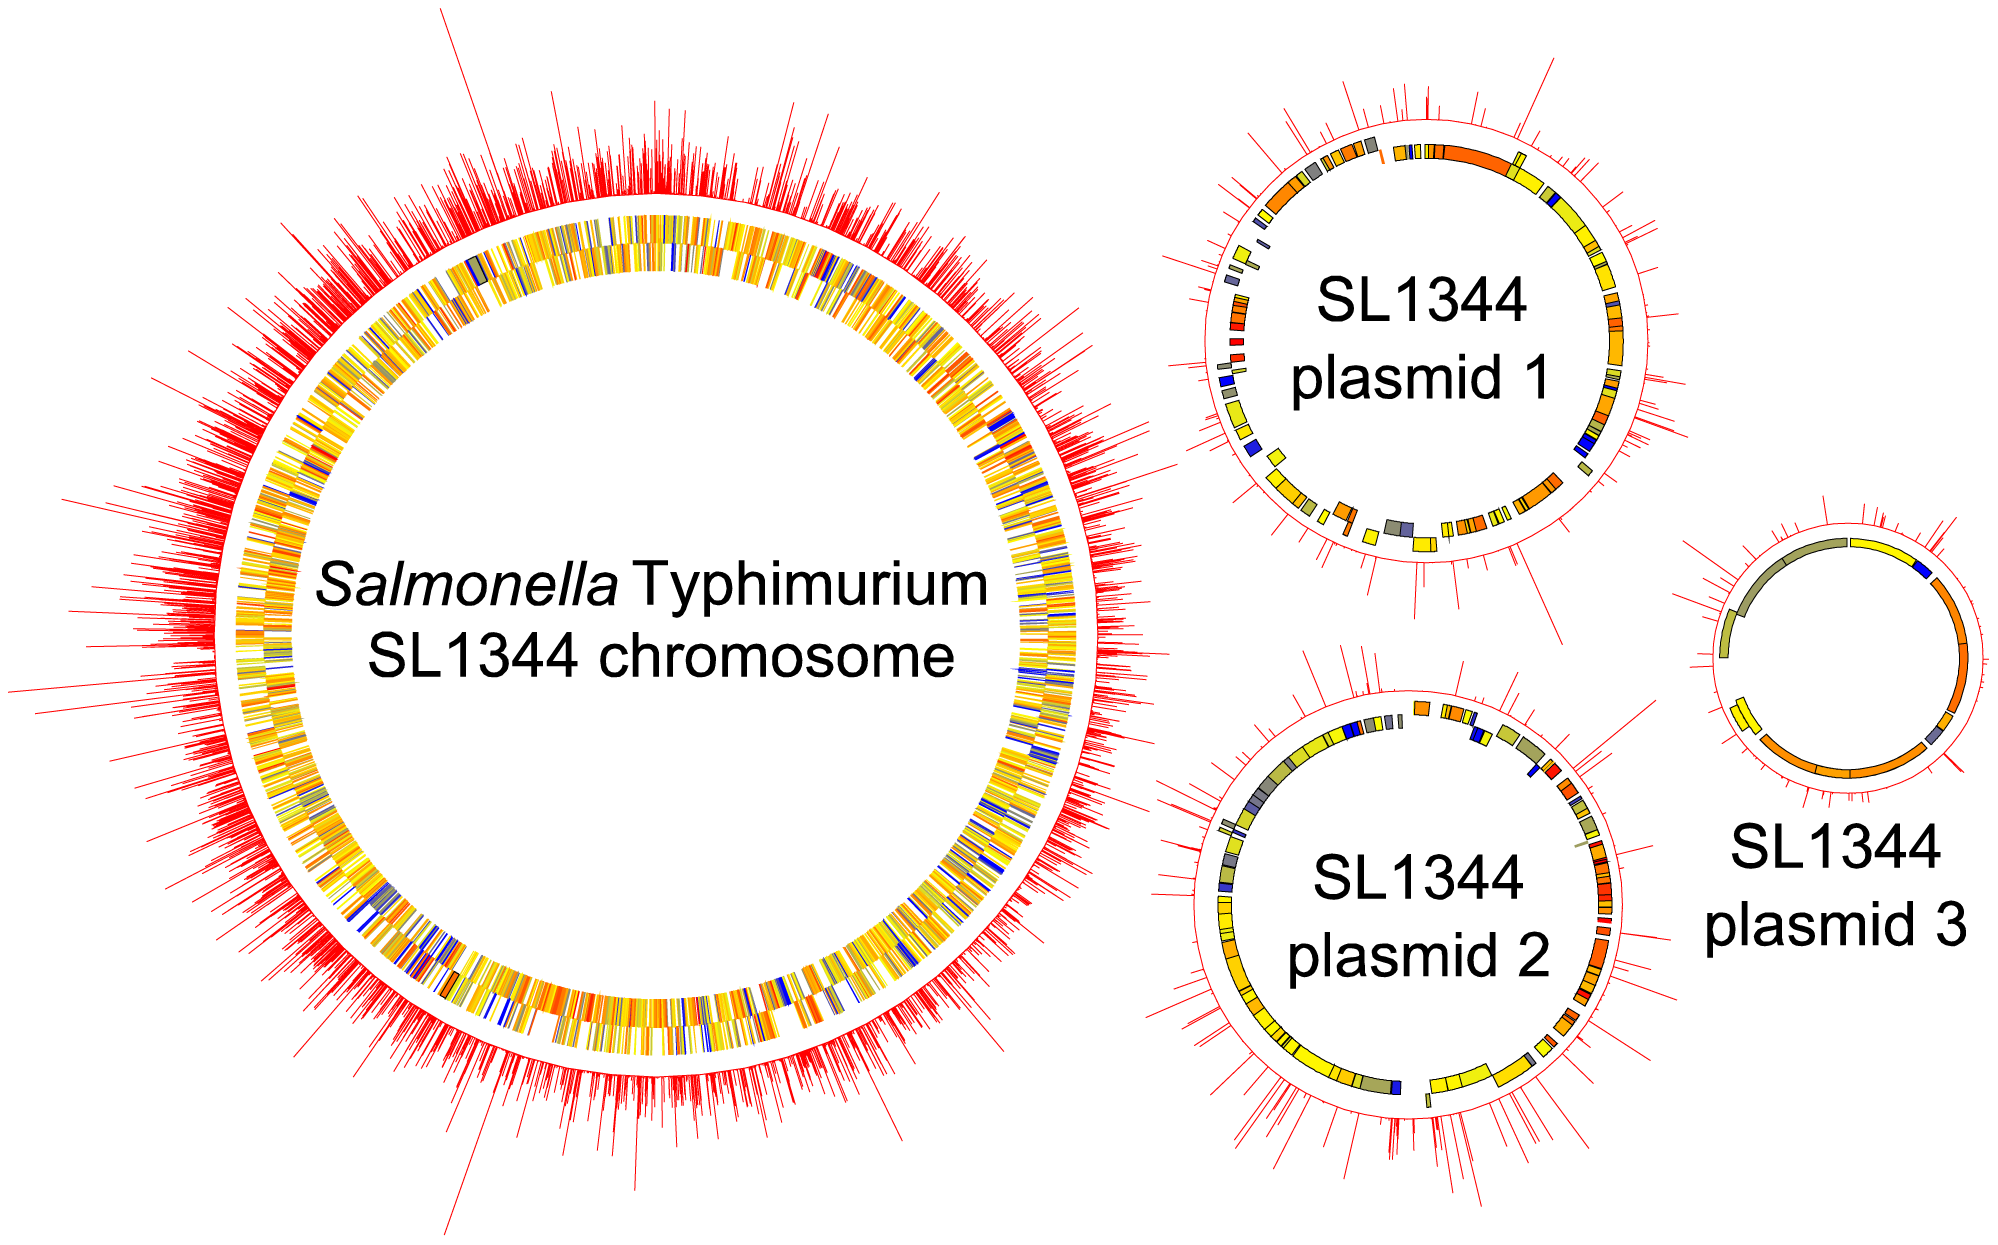 Circular diagrams of the <i>S.</i> Typhimurium SL1344 chromosome and plasmids (not to scale), showing the near random distribution and high density of transposon insertions mapped by TraDIS.